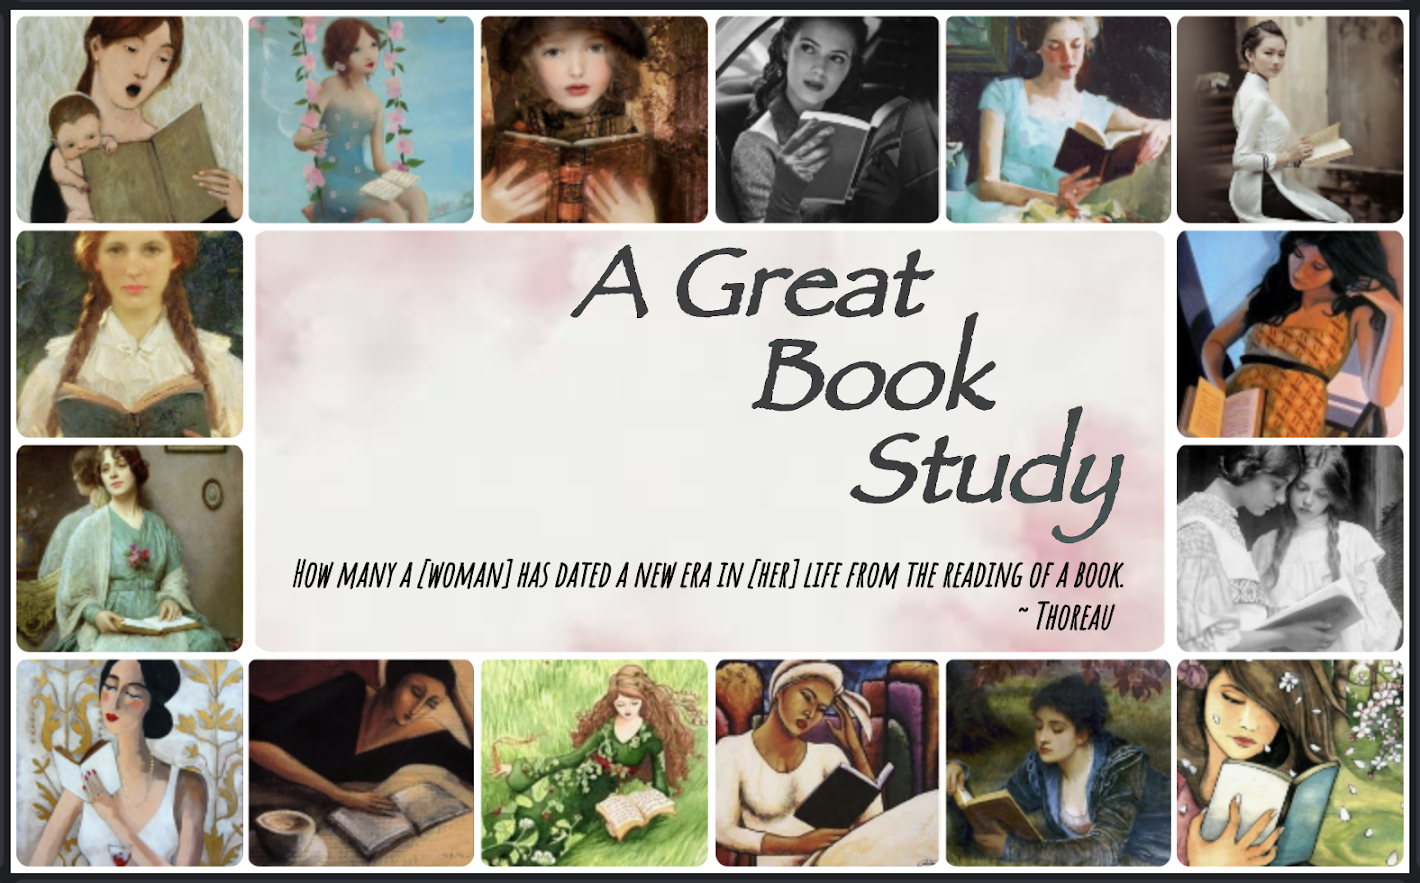 A Great Book Study